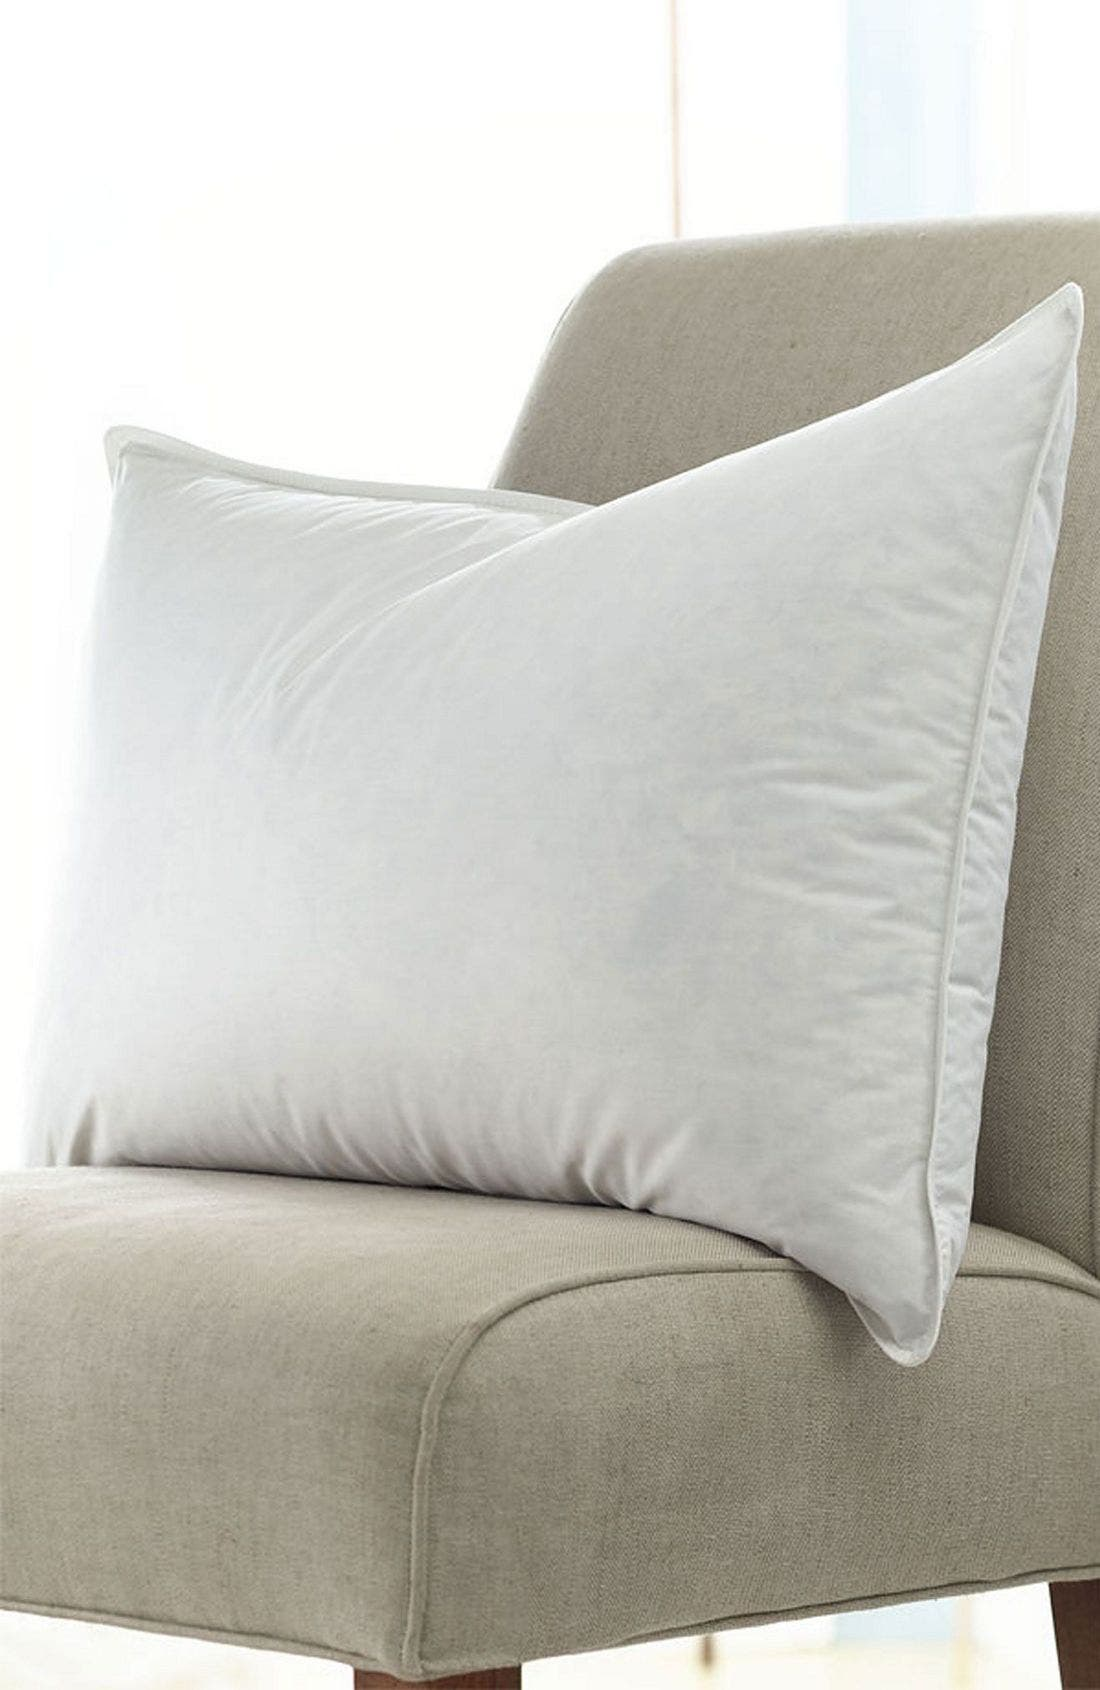 Alternate Image 2  - Westin At Home 'Home Collection' Hypoallergenic Pillow